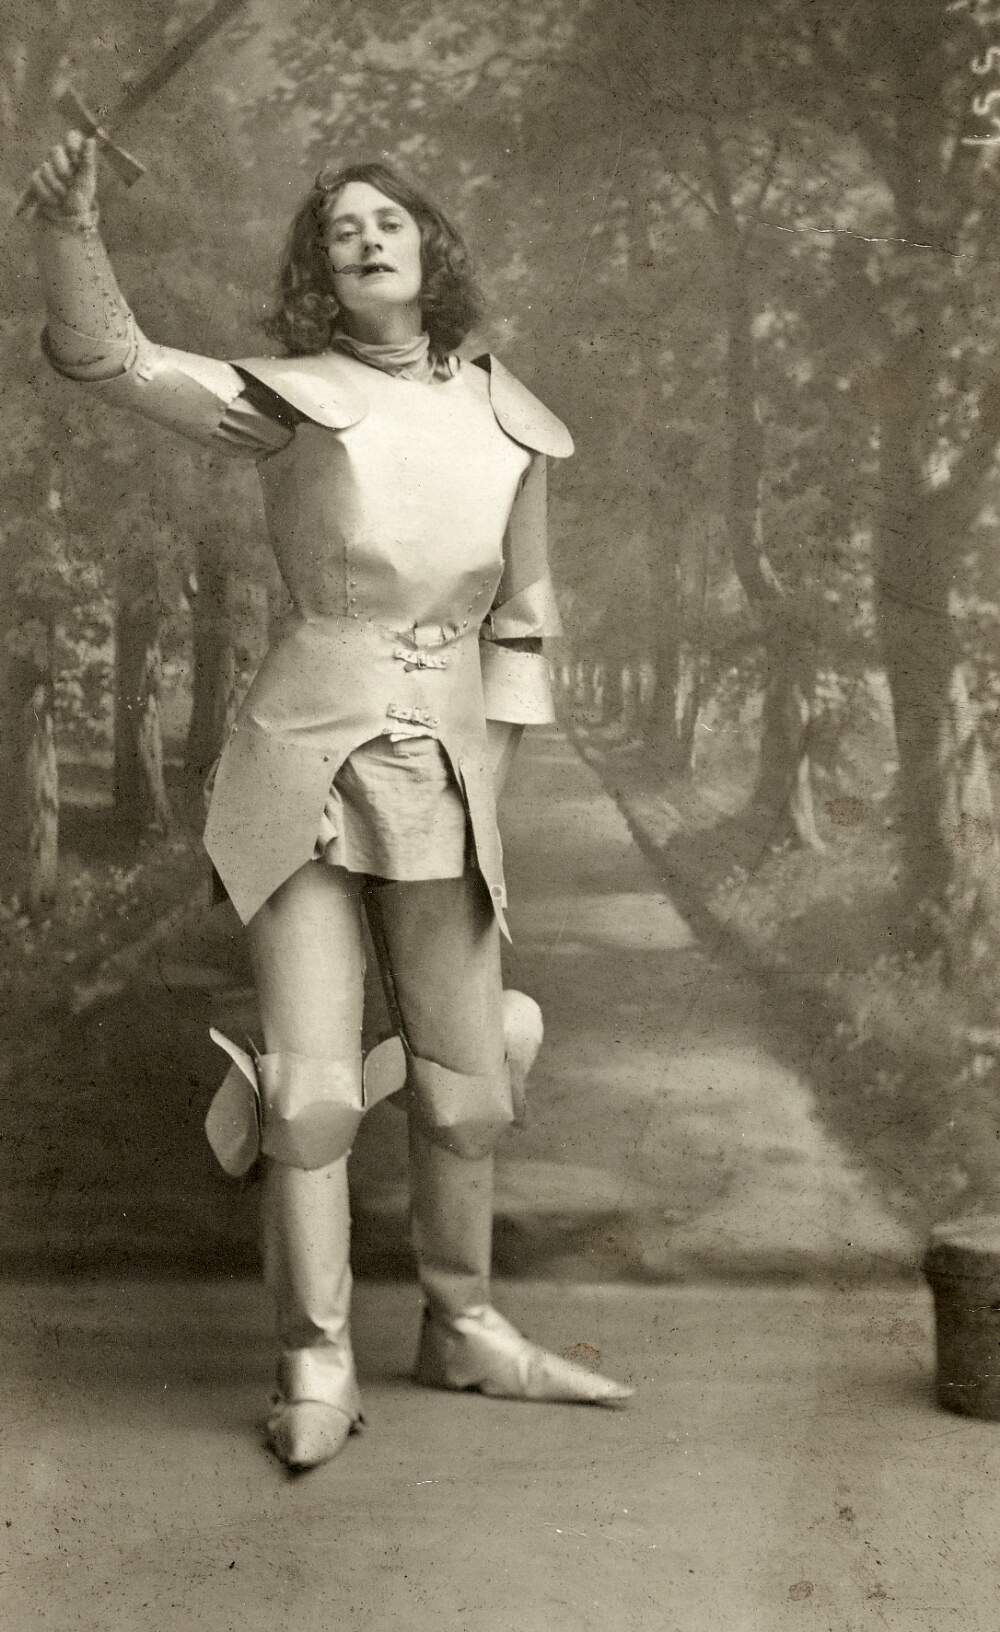 Countess Markievicz as Joan of Arc in suffrage pageant, Photo by Roe McMahon, 1914. Courtesy of the National Library of Ireland.